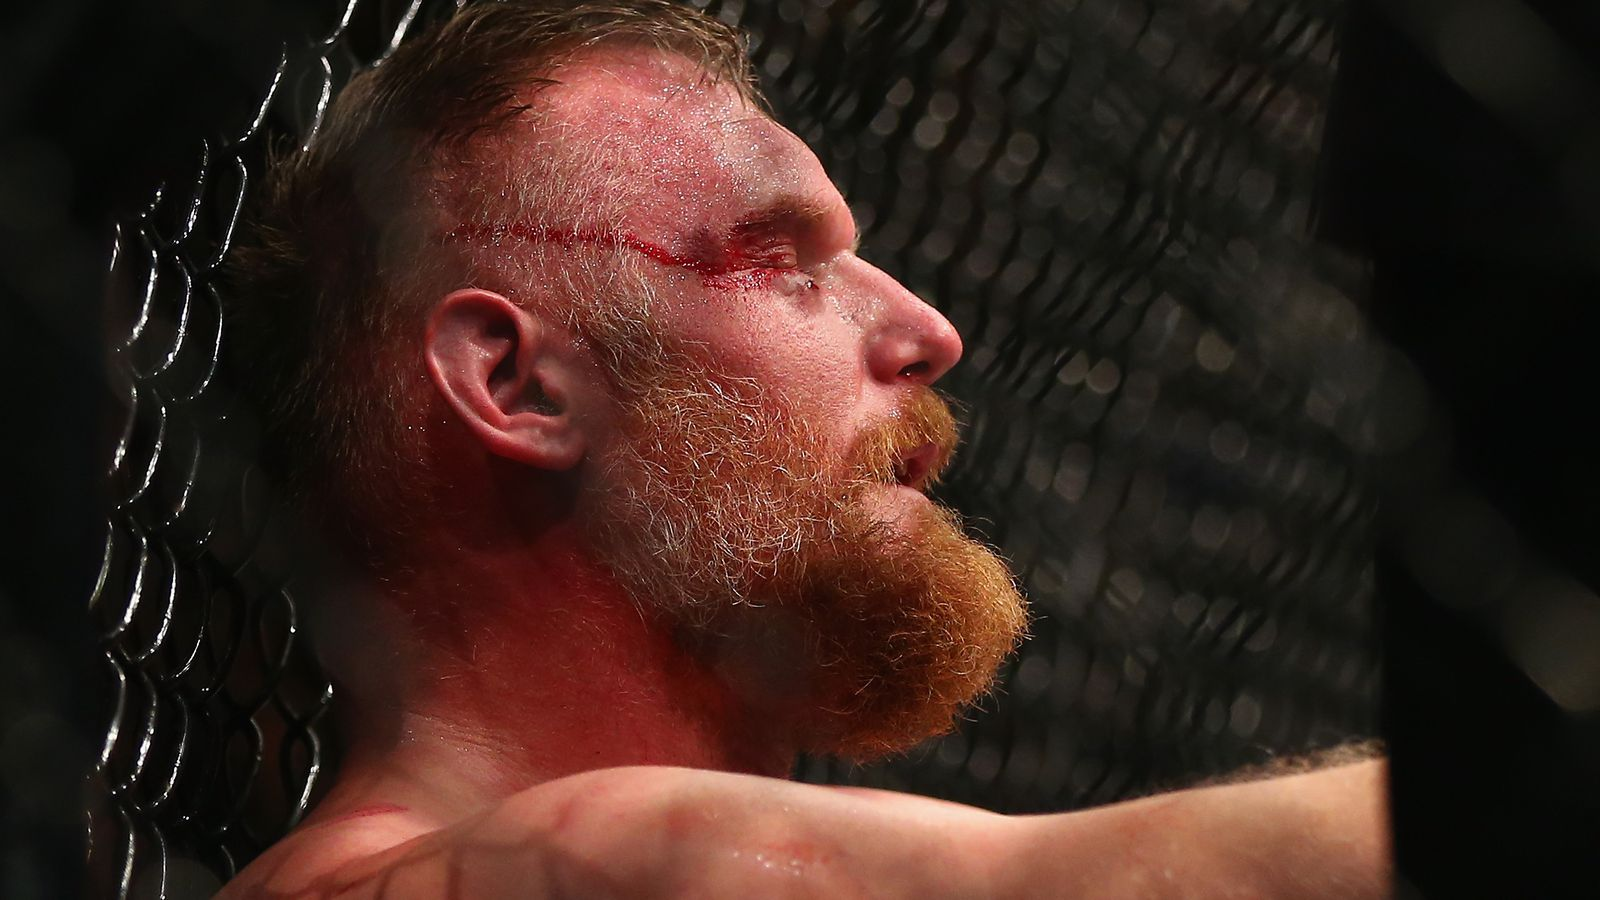 ... Night 93 video recap: Barnett batters, submits Arlovski - Bloody Elbow